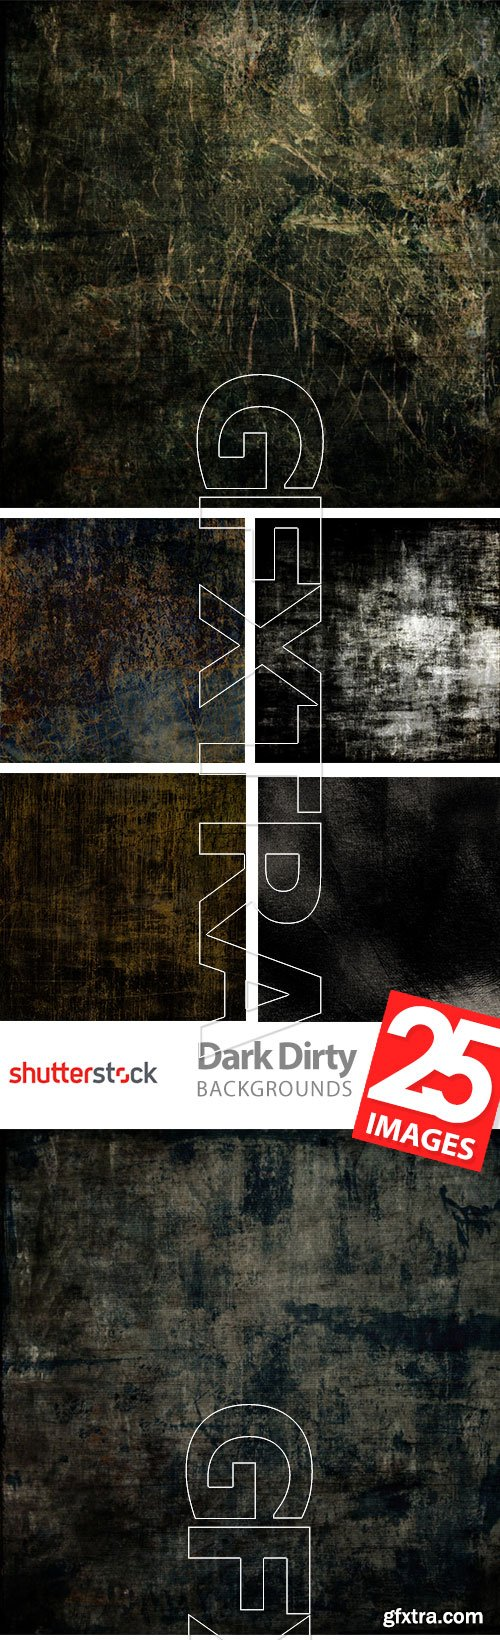 Dark and Dirty Backgrounds 25xJPG